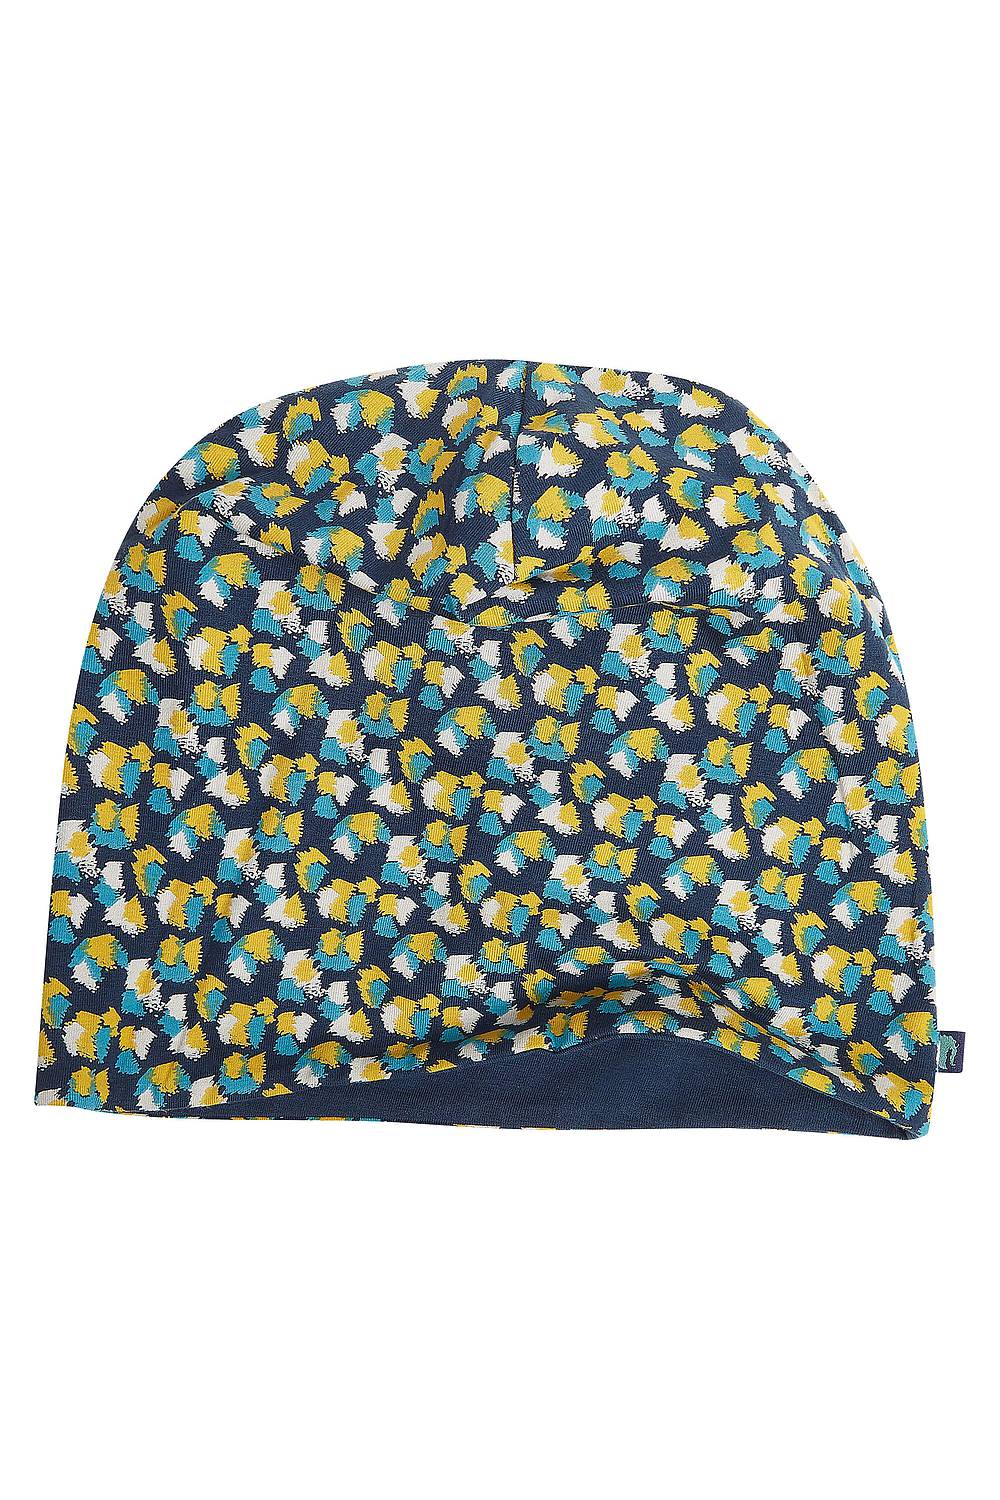 Jersey Beanie Sedna Multi-Color Navy